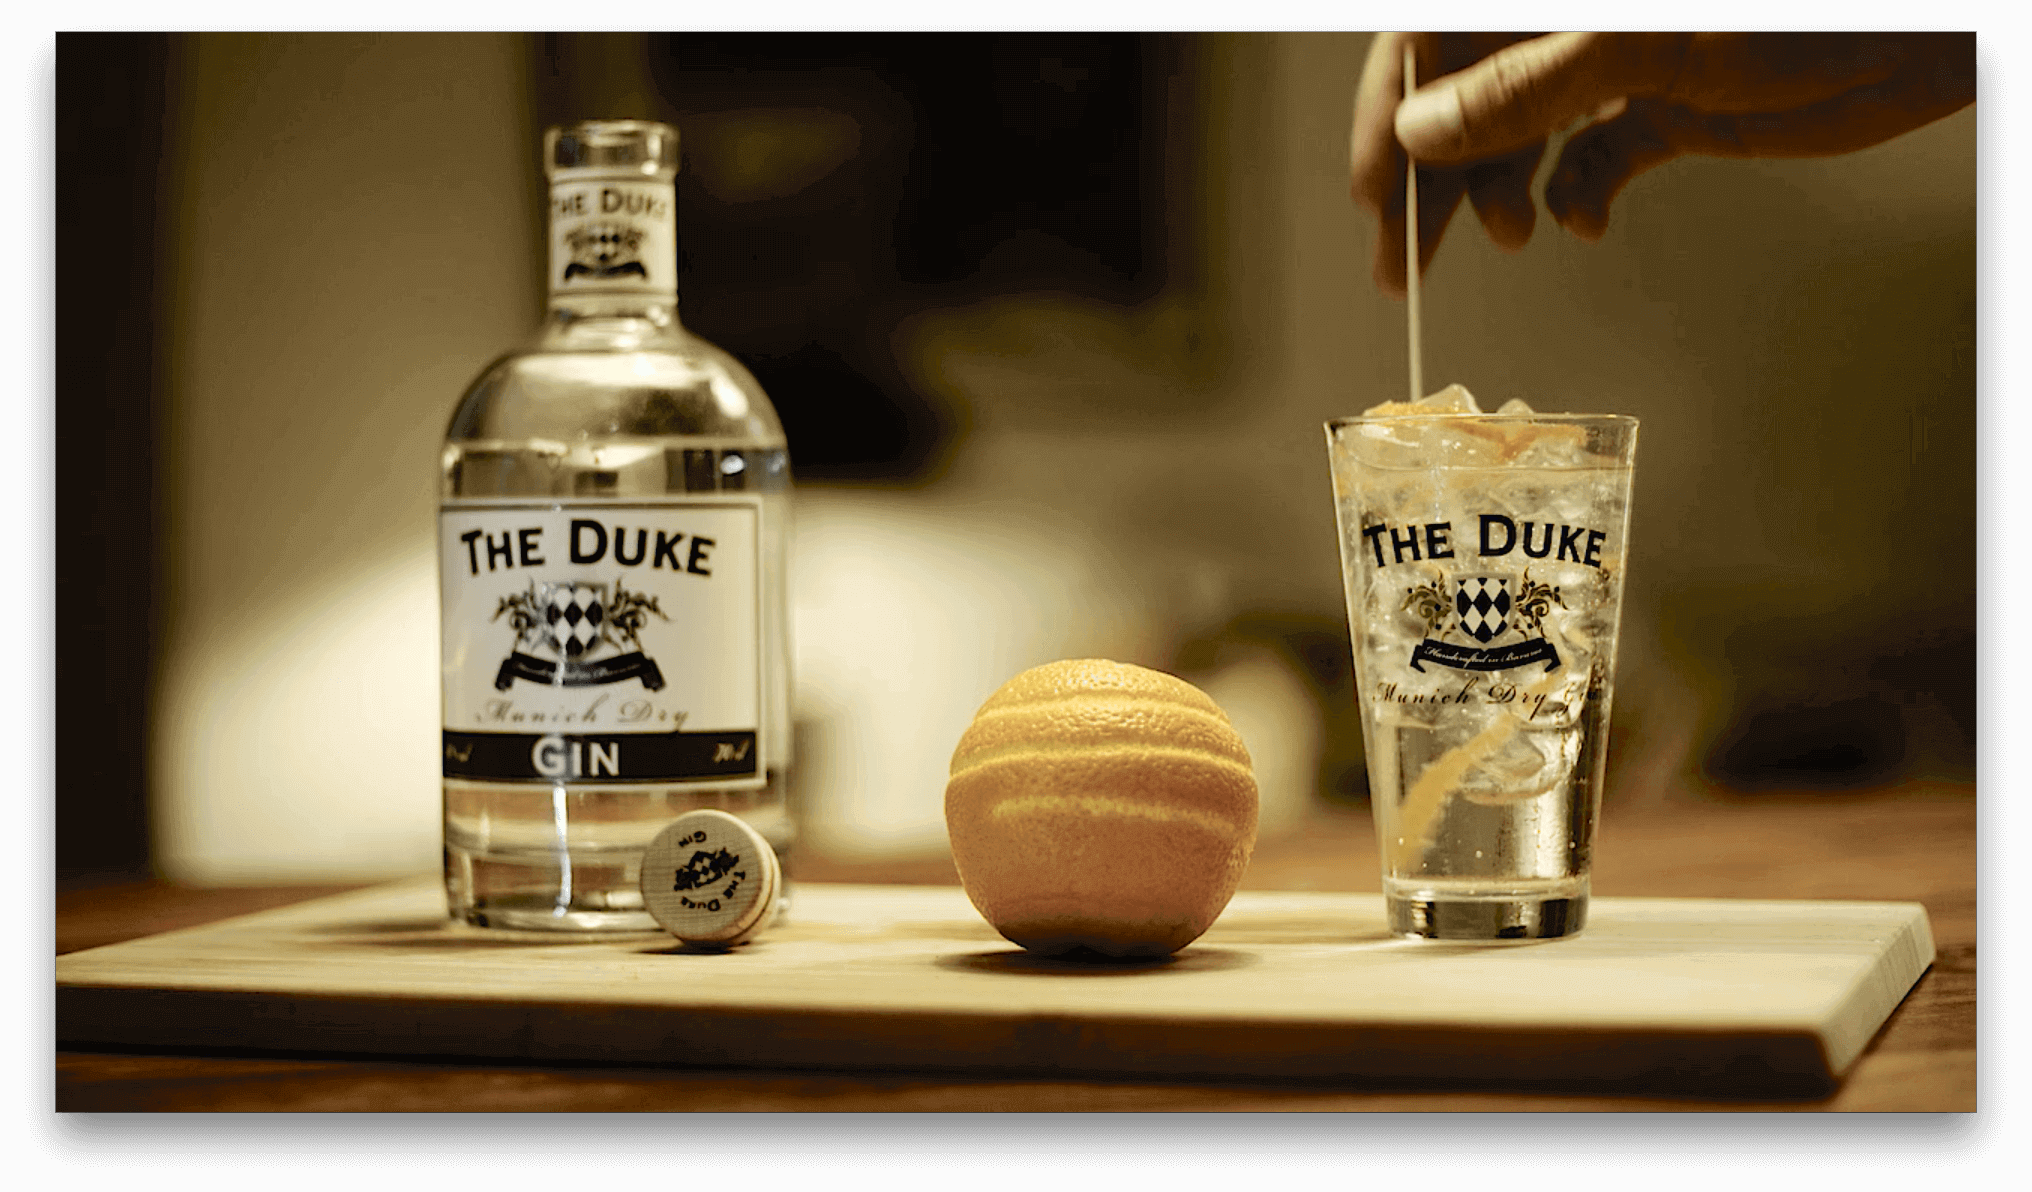 THE DUKE Gin Tonic Homebar